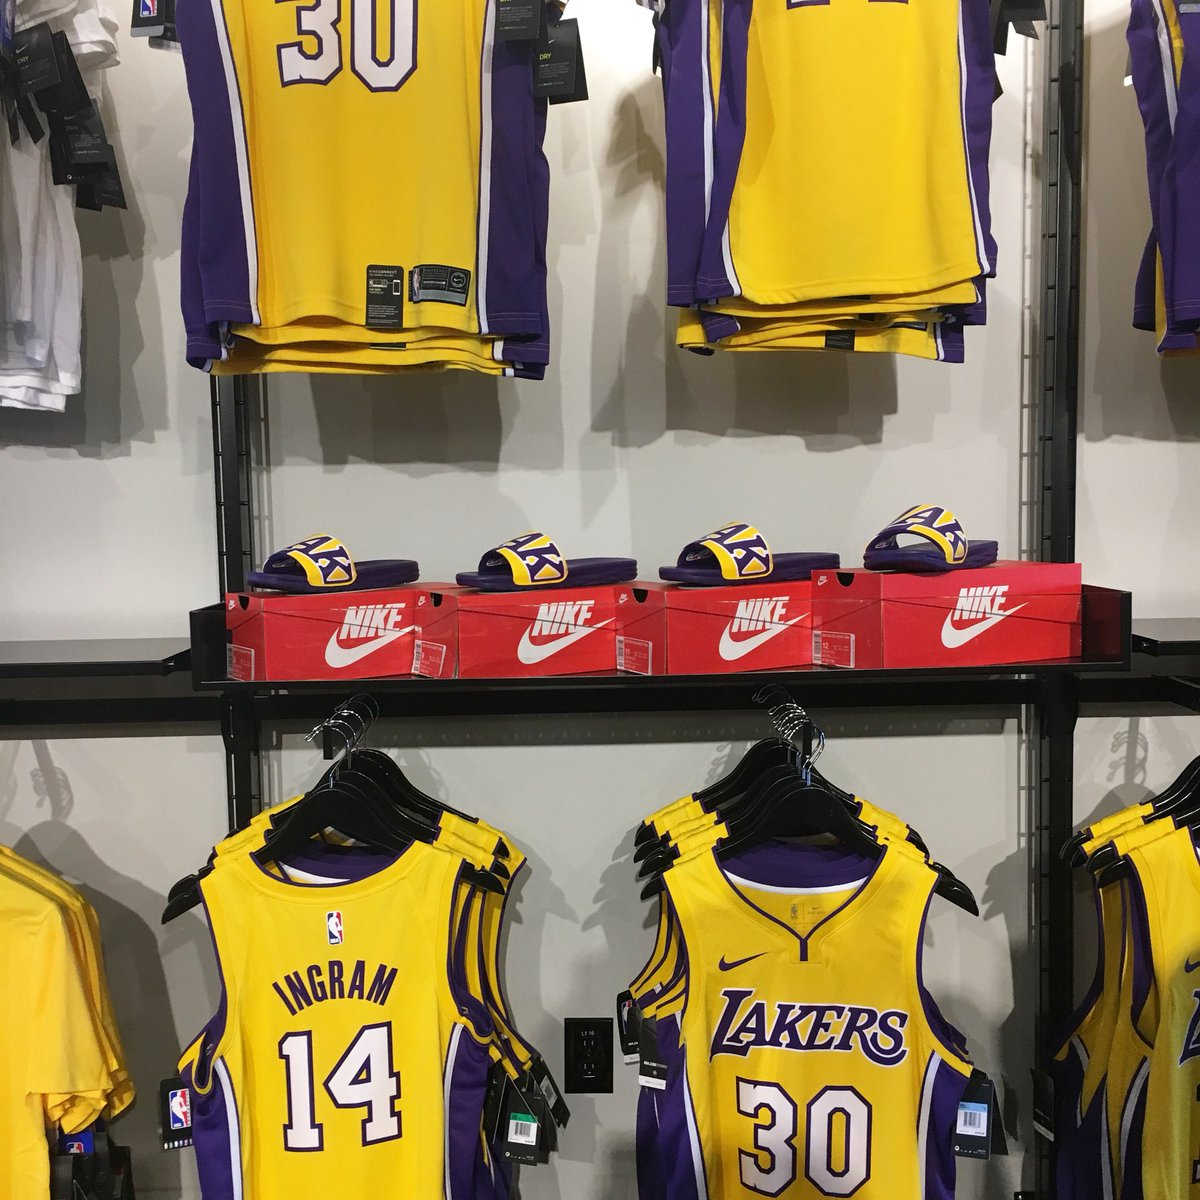 new product 9047c 24d72 Lakers Store on Twitter: